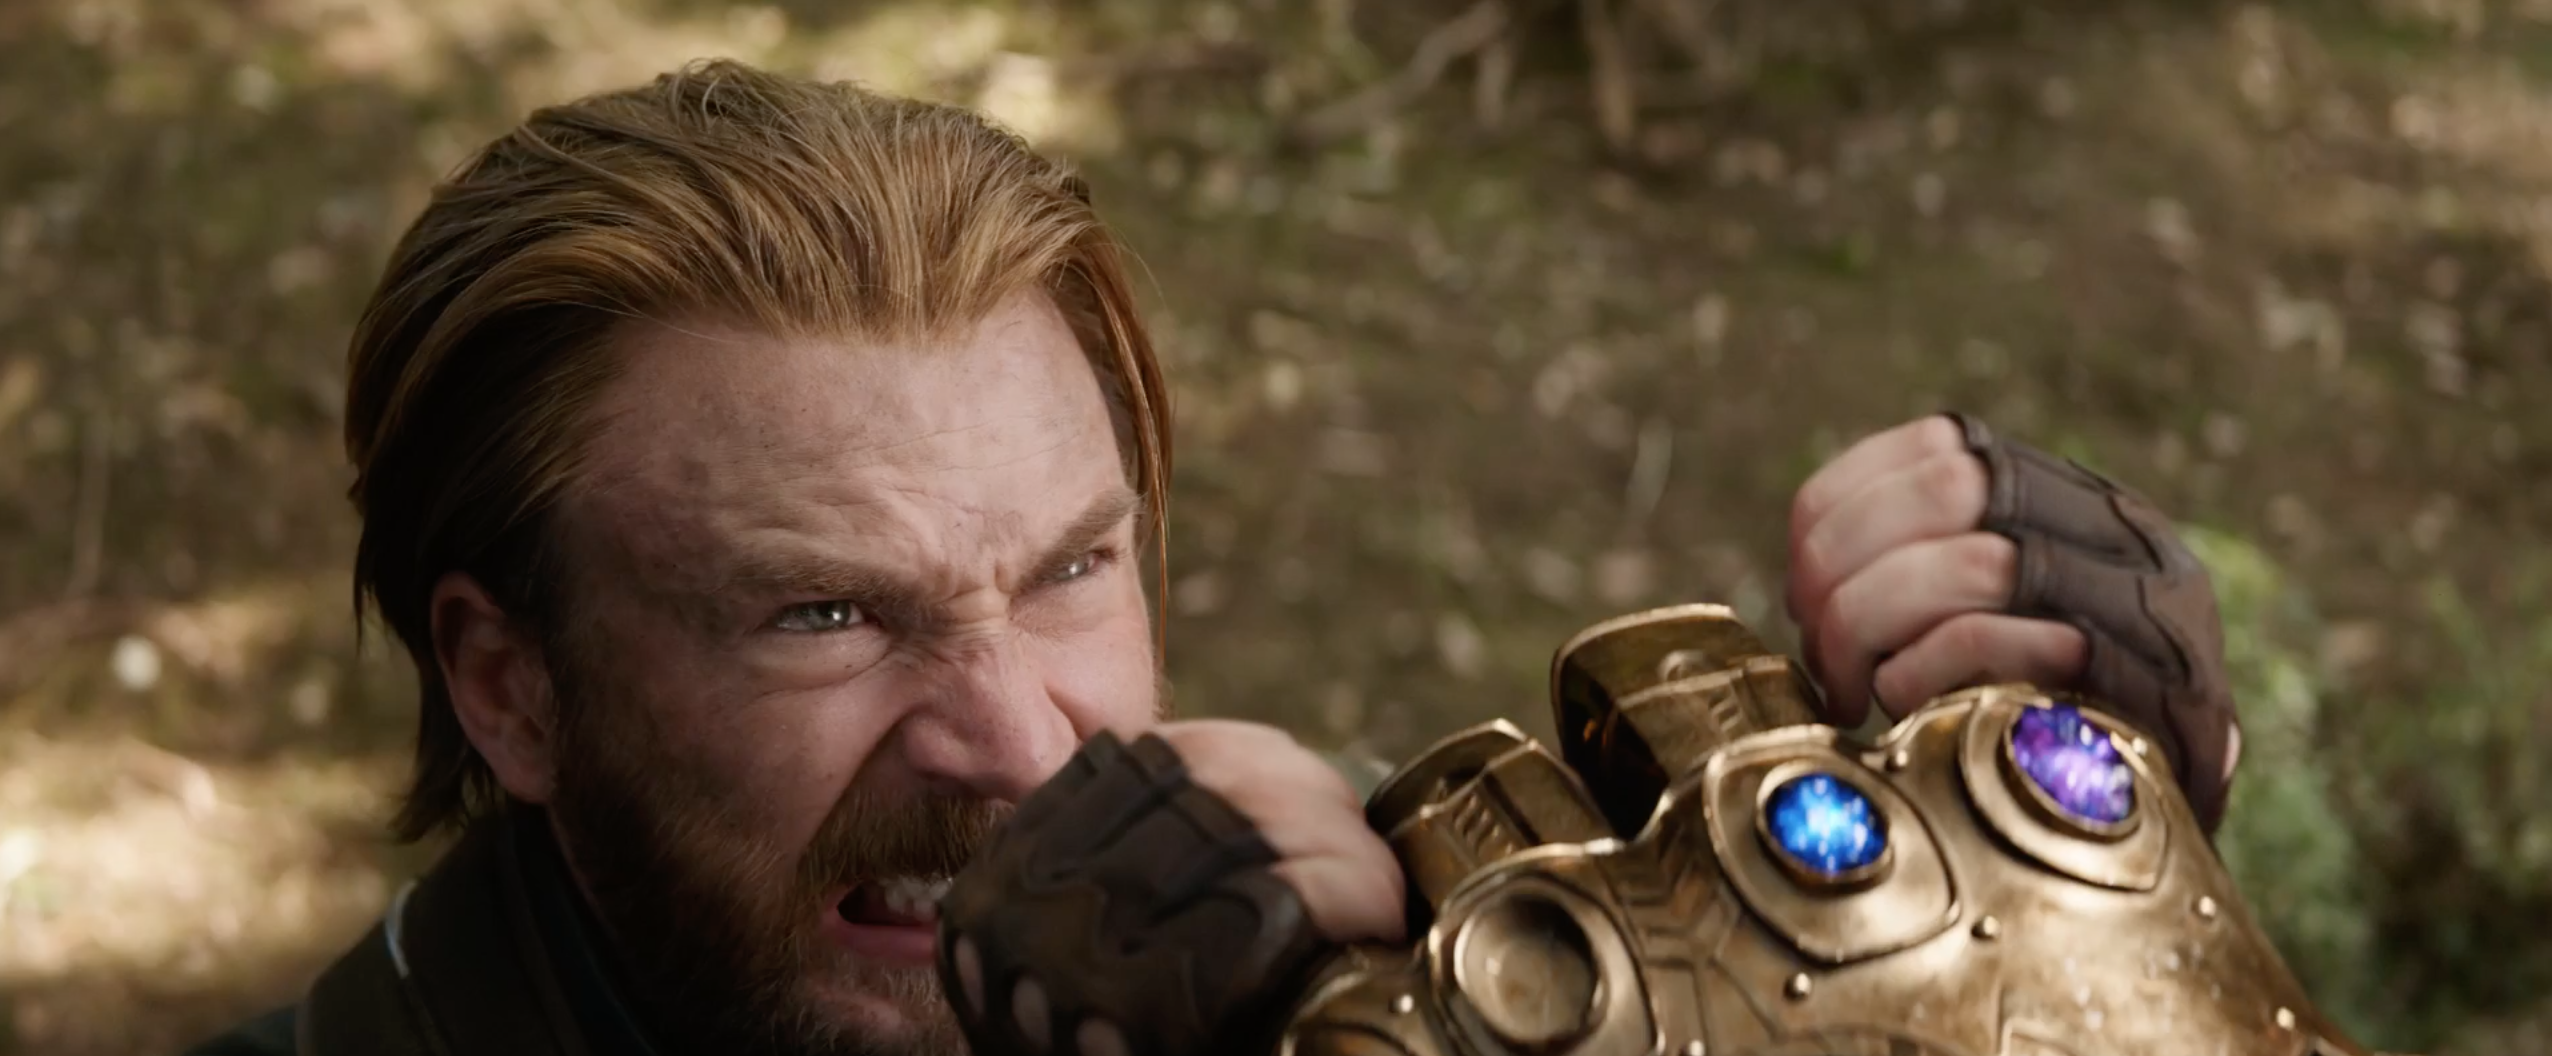 9 things we learned from the new 'infinity war' trailer | inverse